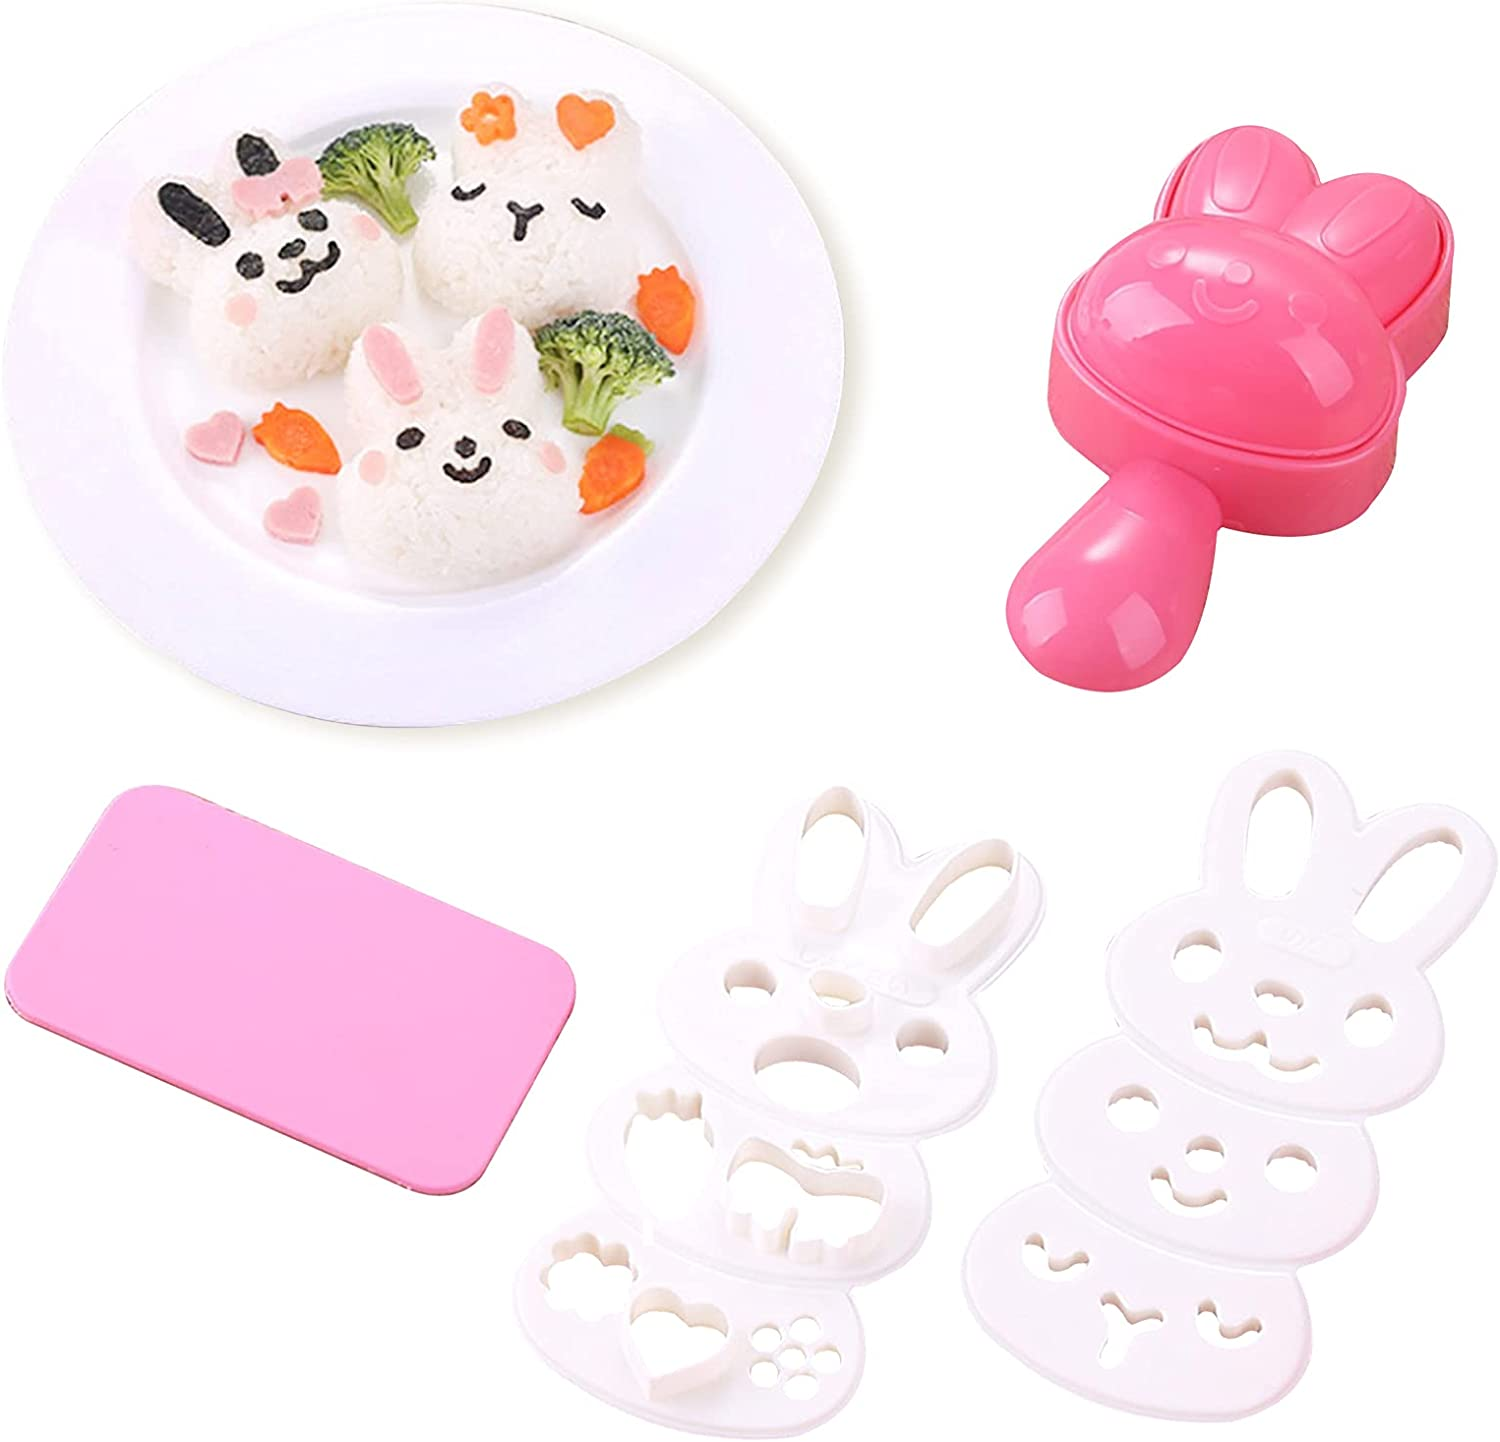 Rice Ball Molds for Kids Cute Rabbit Pattern Sushi Mold Rice Shaper Onigiri Mold Bento Accessories DIY Kitchen Tools with Nori Seaweed Punch Cutter